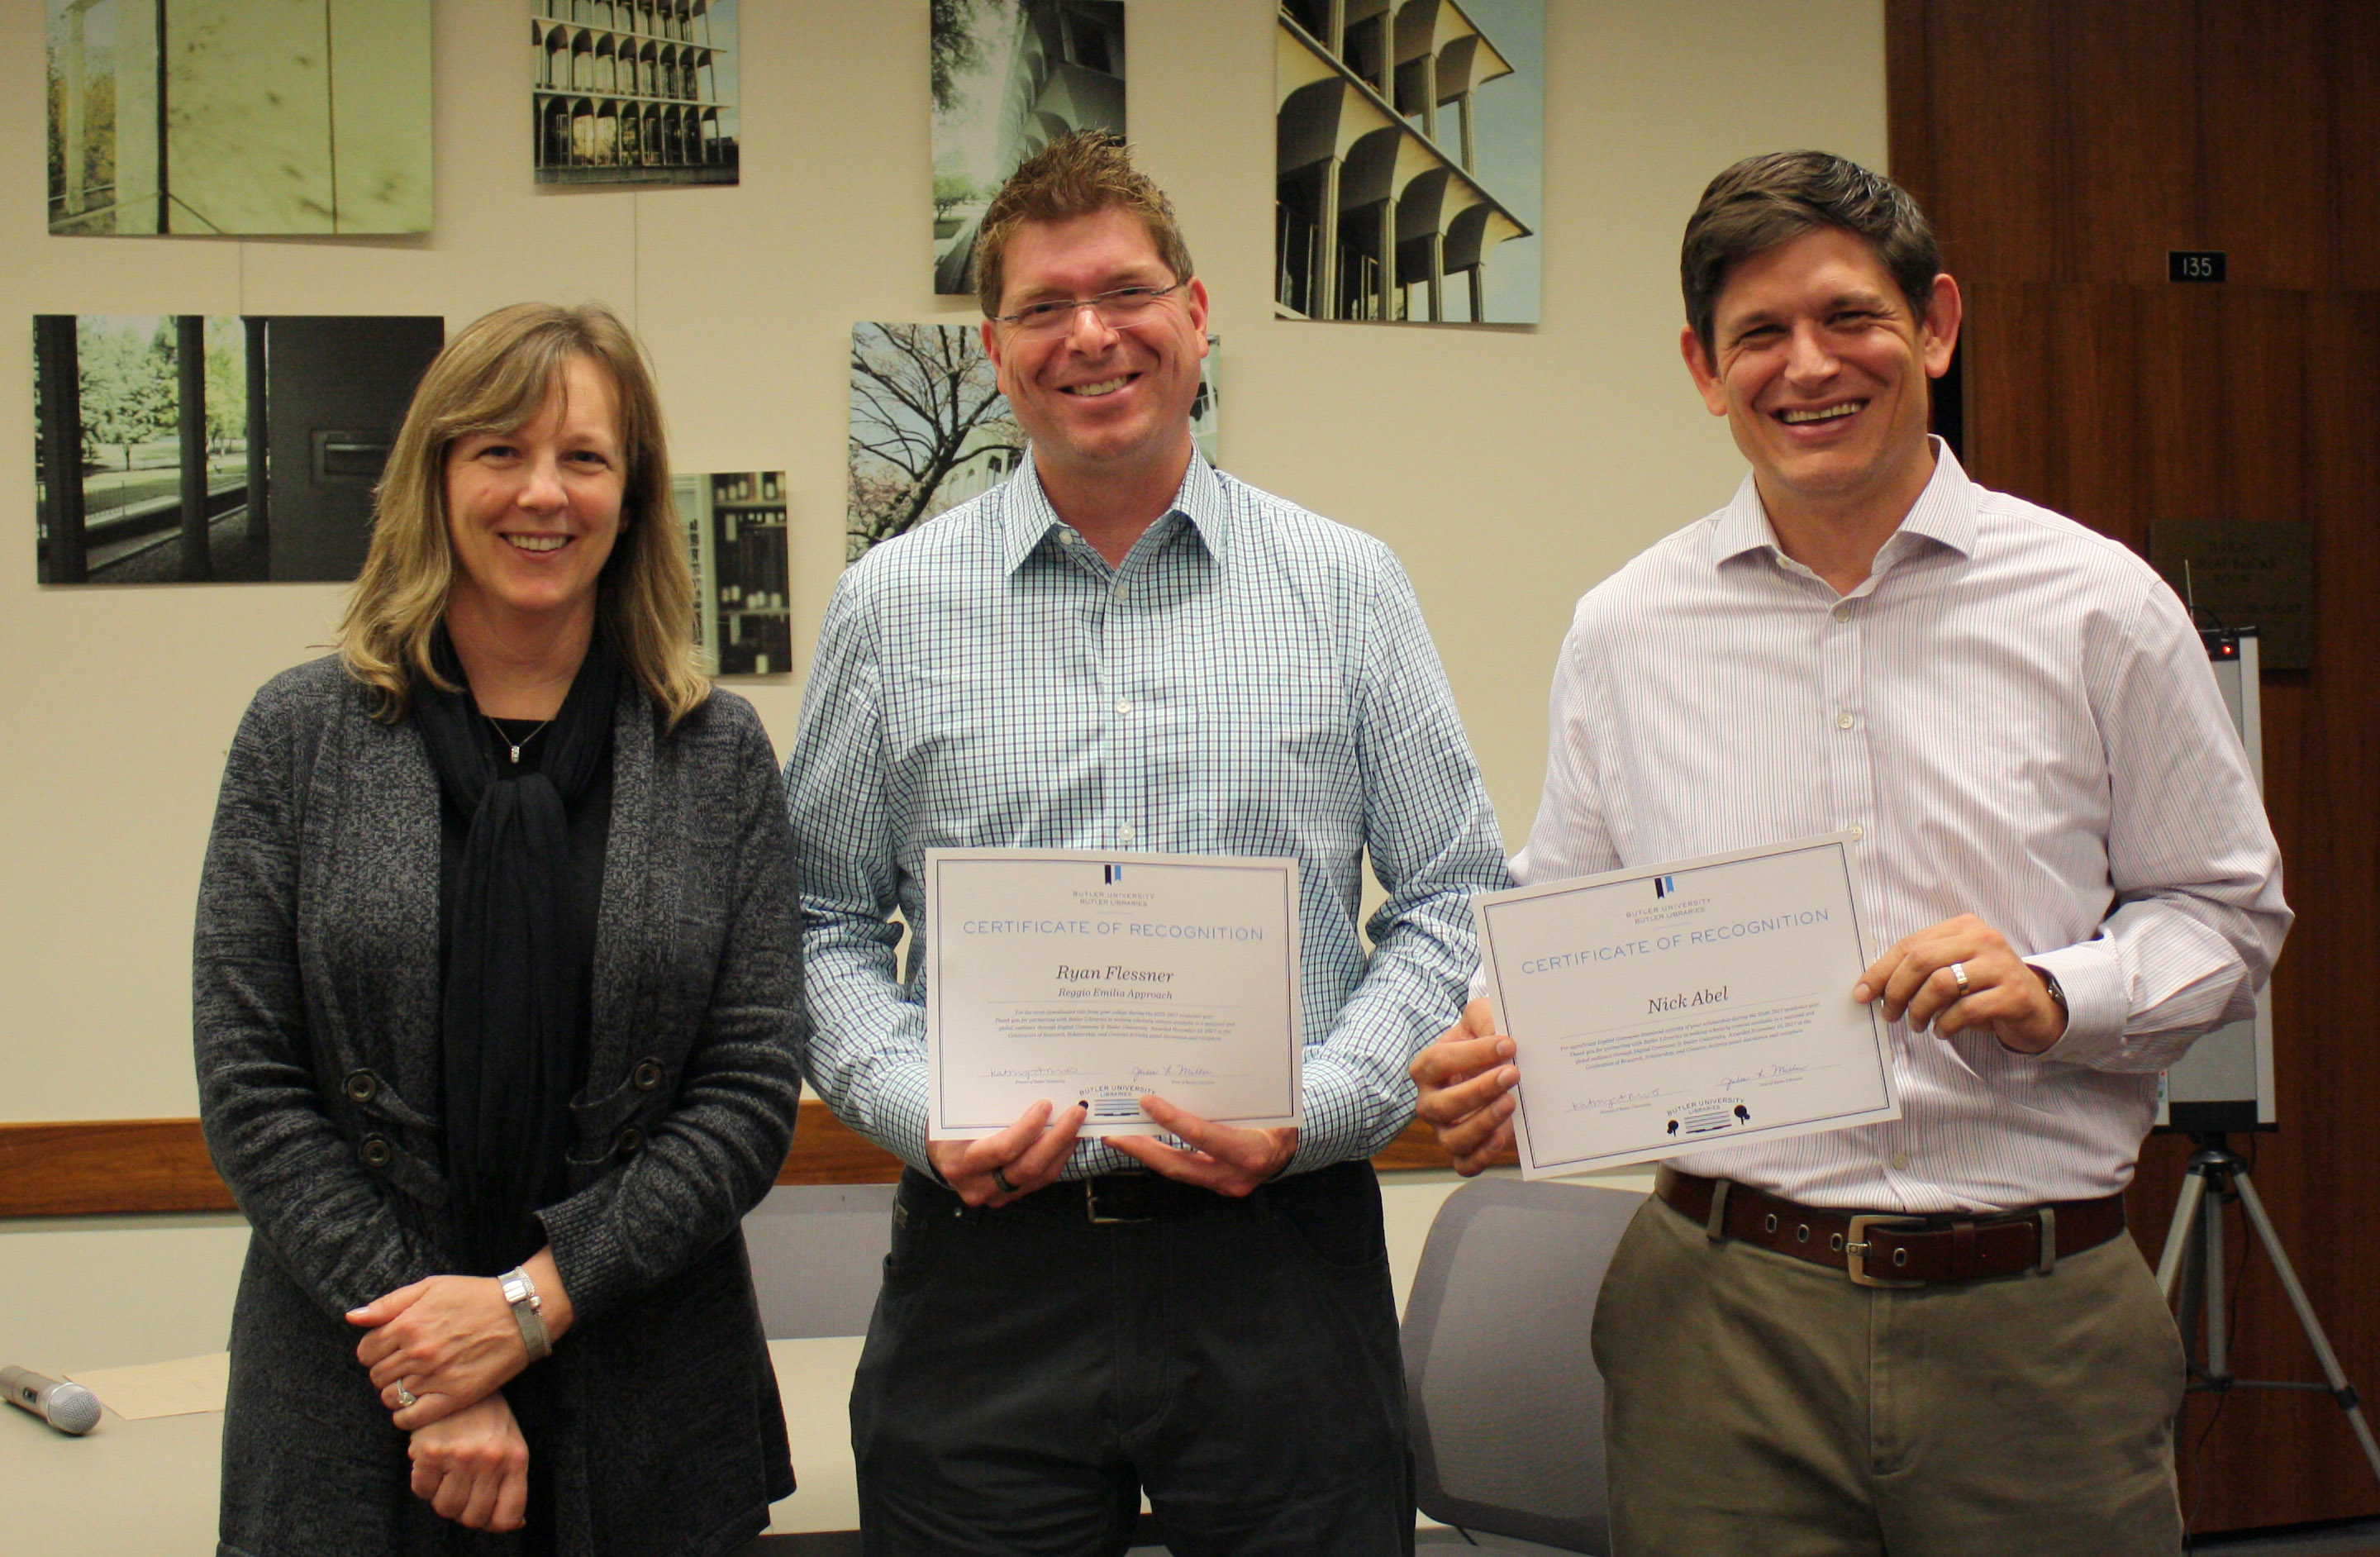 Celebration Certificate Recipients - COE faculty